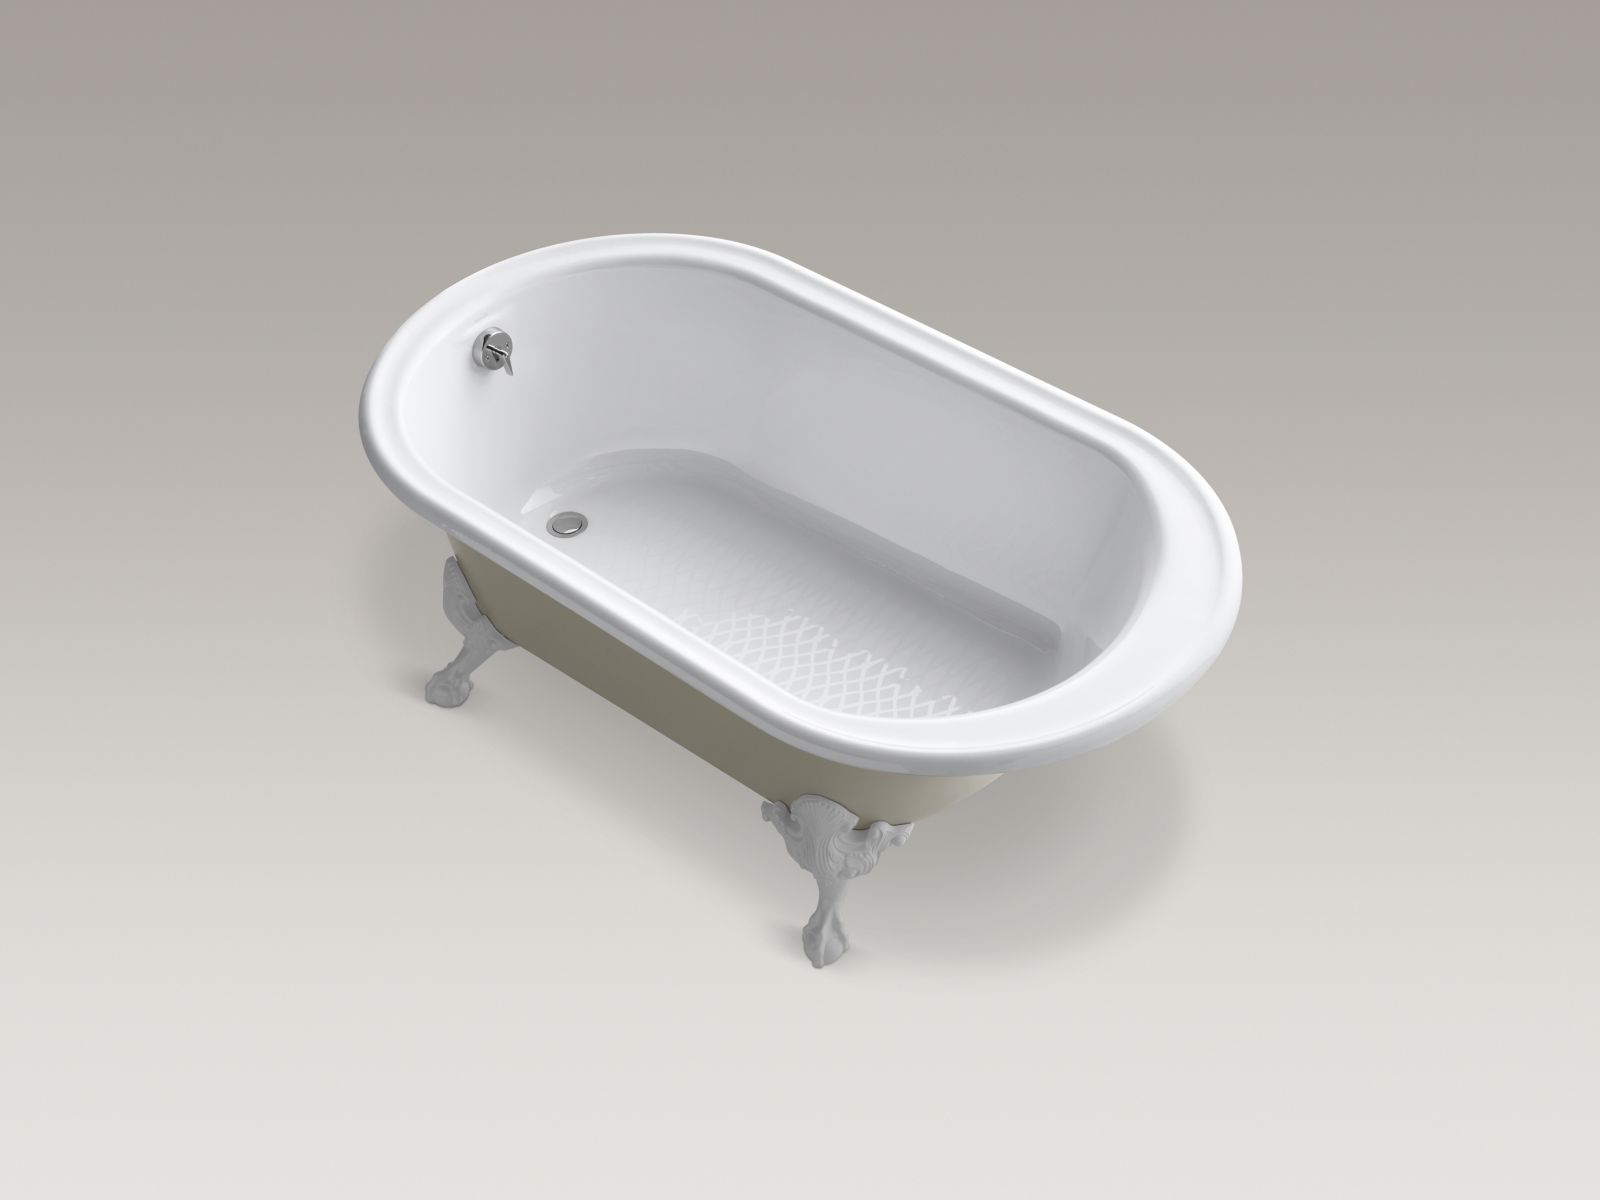 Kohler K-710-S-0 Iron Works Historic Bath White